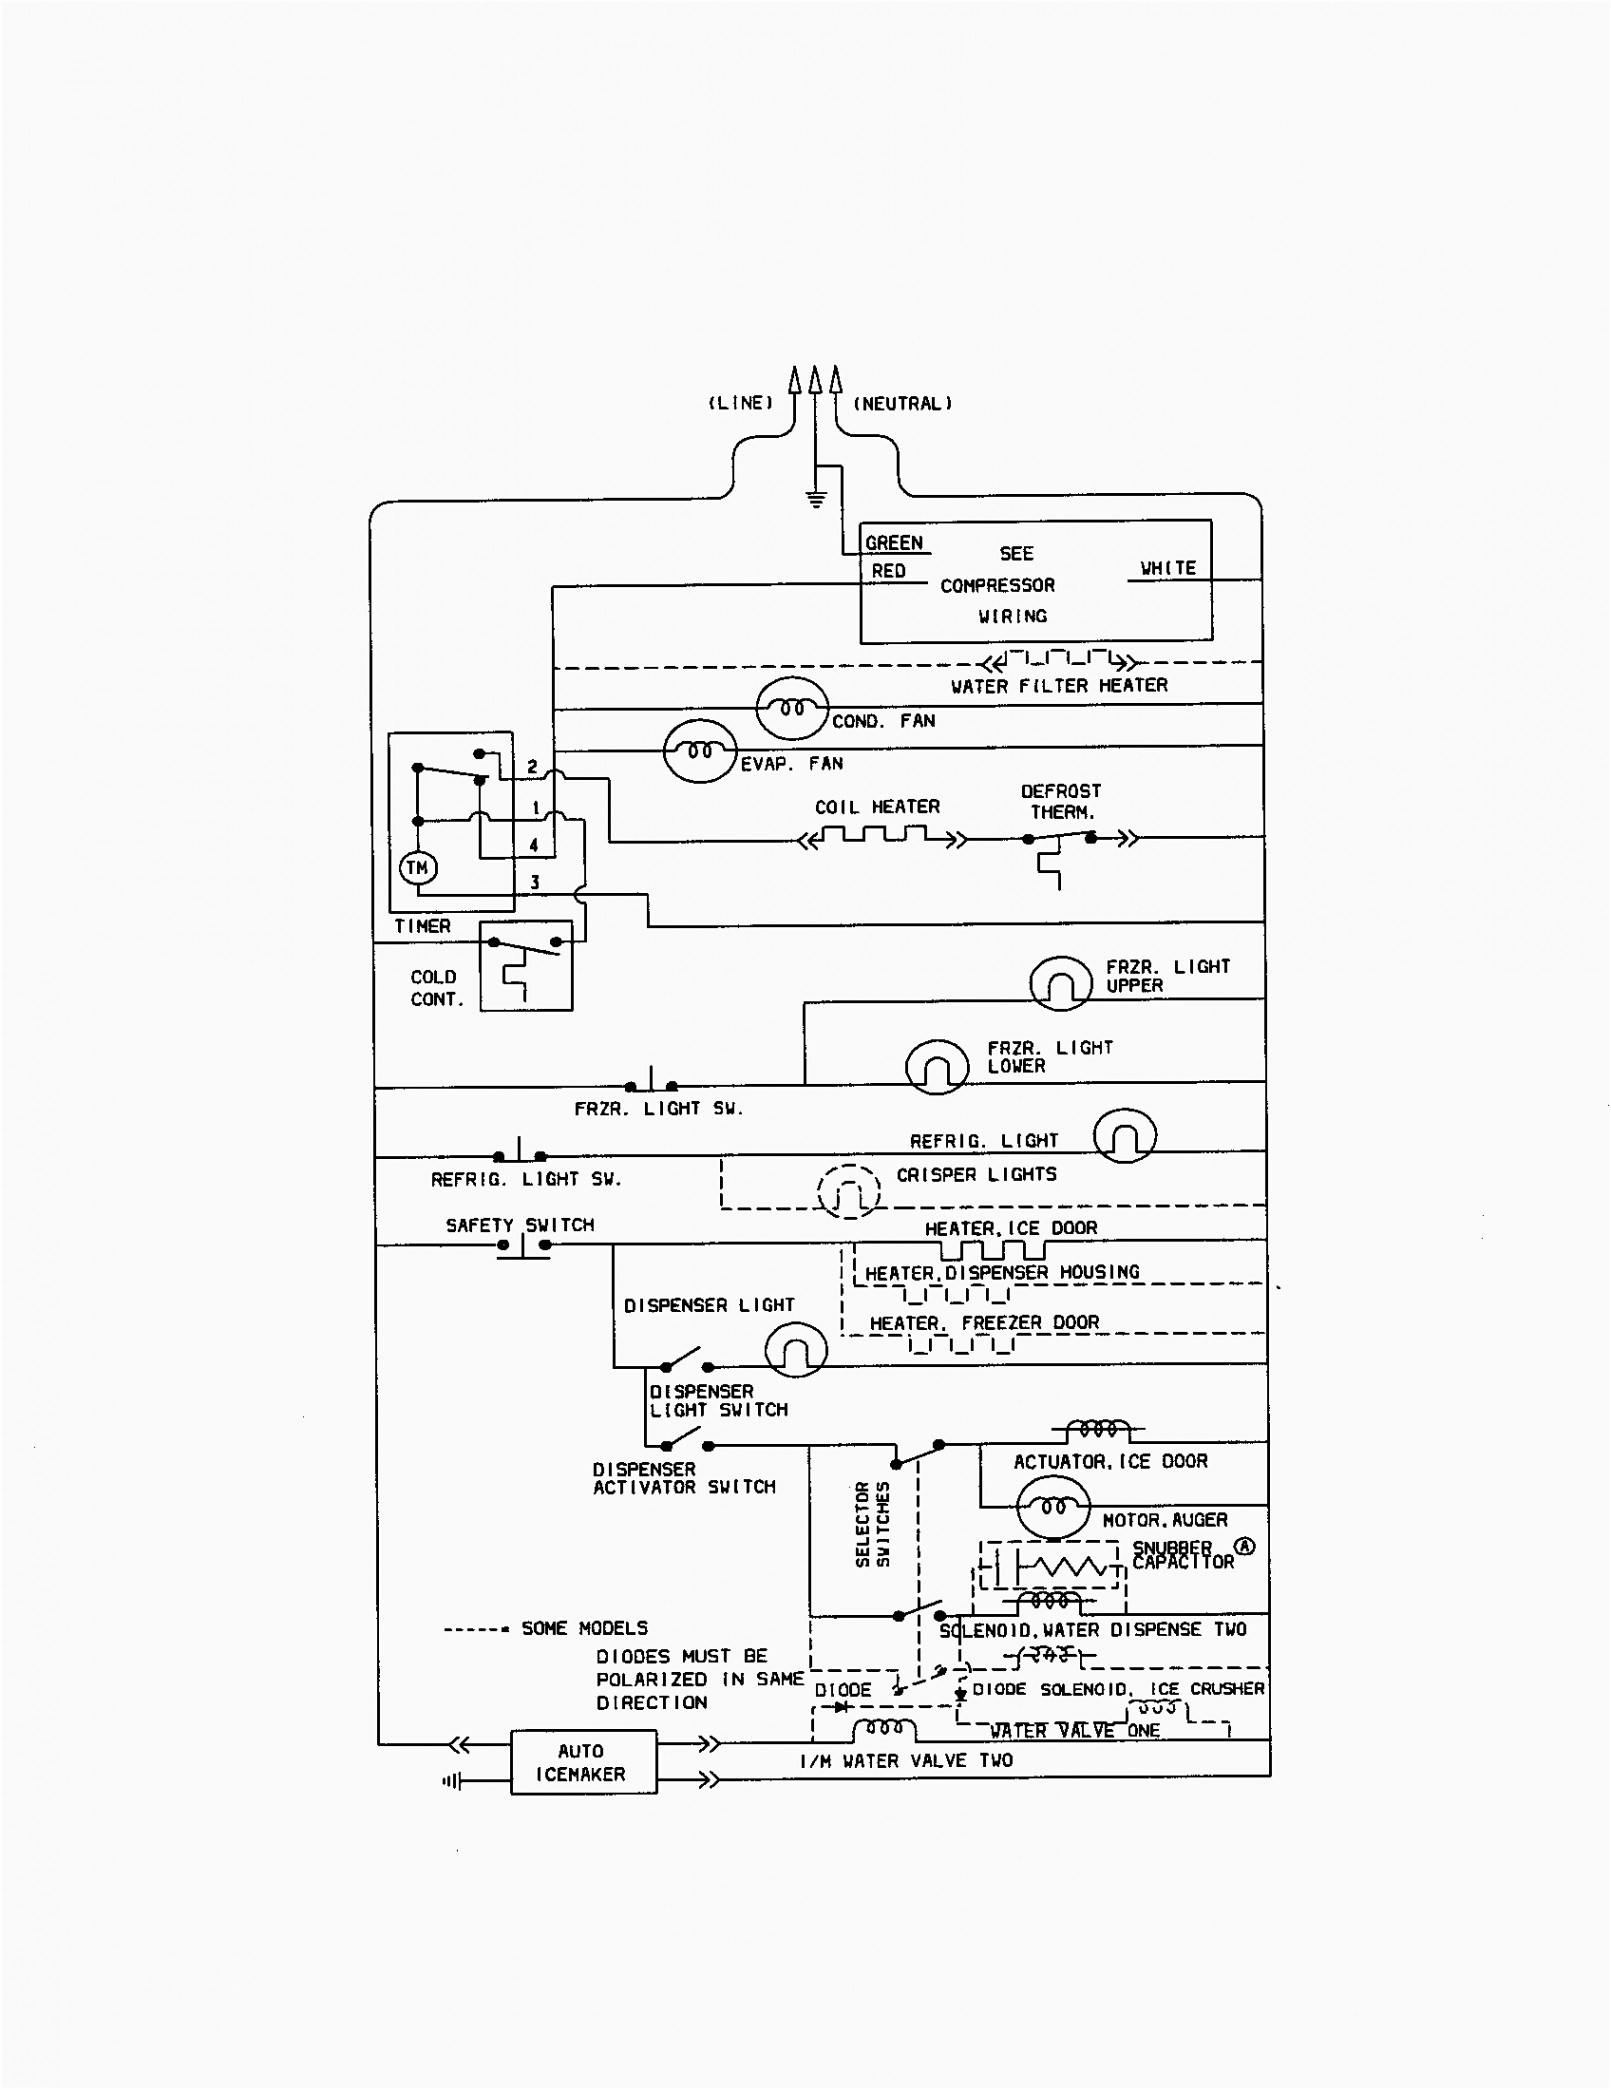 Kenmore ice maker wiring diagram wiring schematic diagram kenmore ice maker parts diagram ge ice maker dispenser wiring schematic refrigerator parts at sears kenmore refrigerator wiring diagram medium resolution